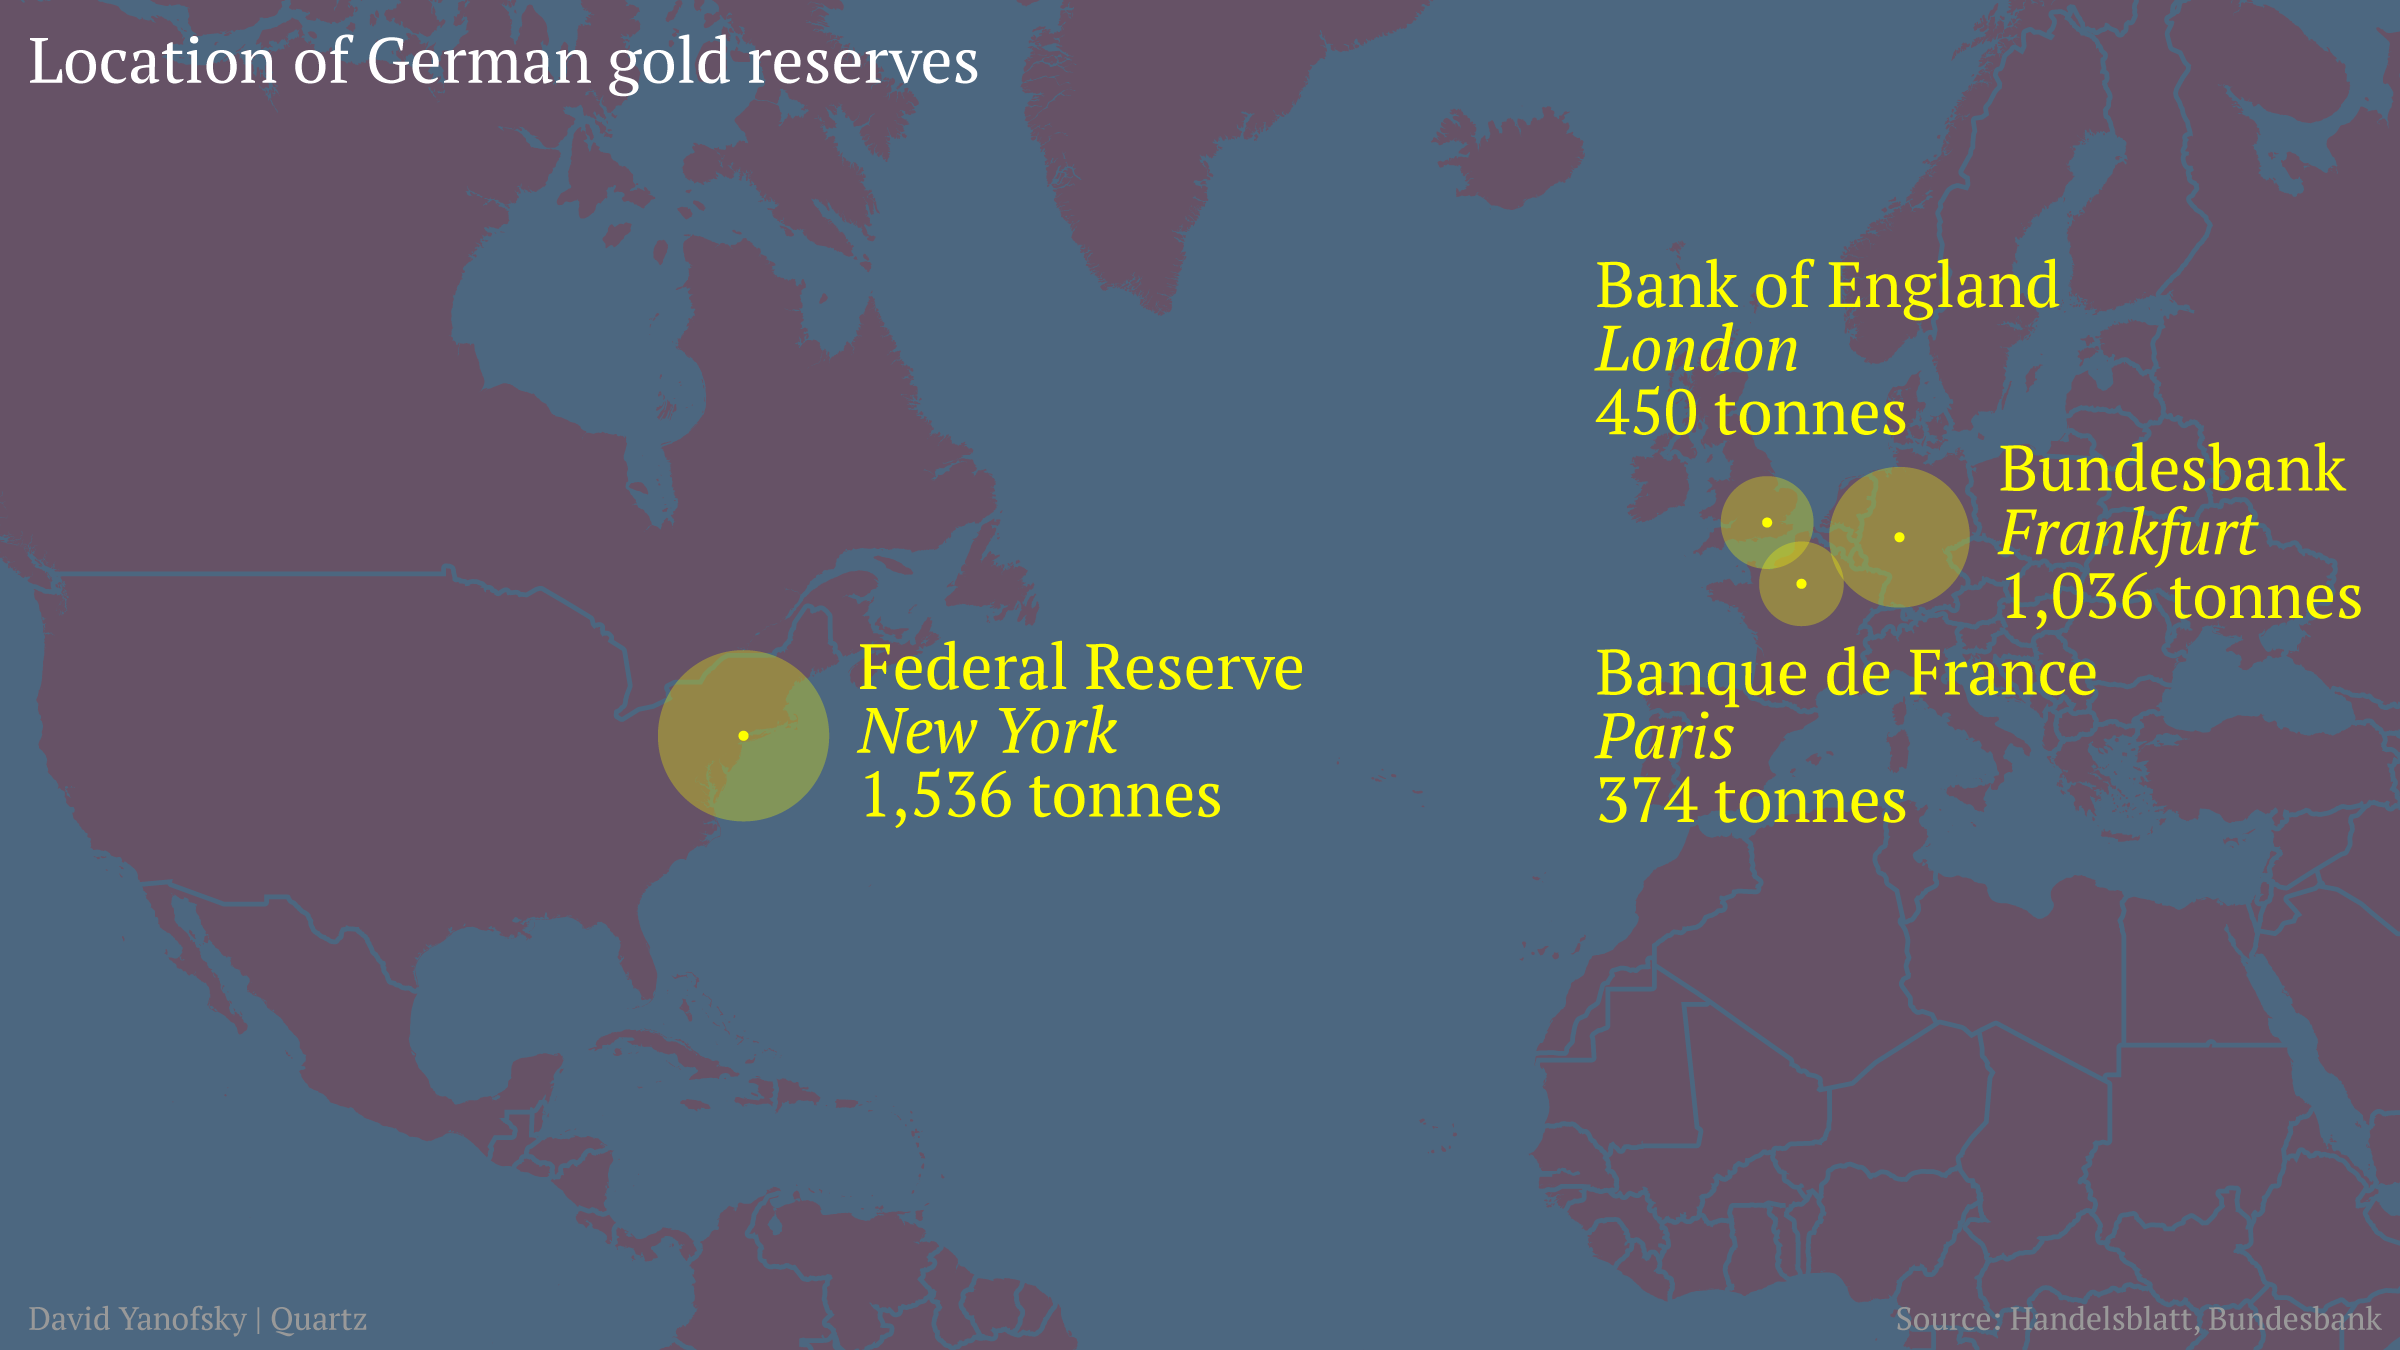 Map of German gold reserves